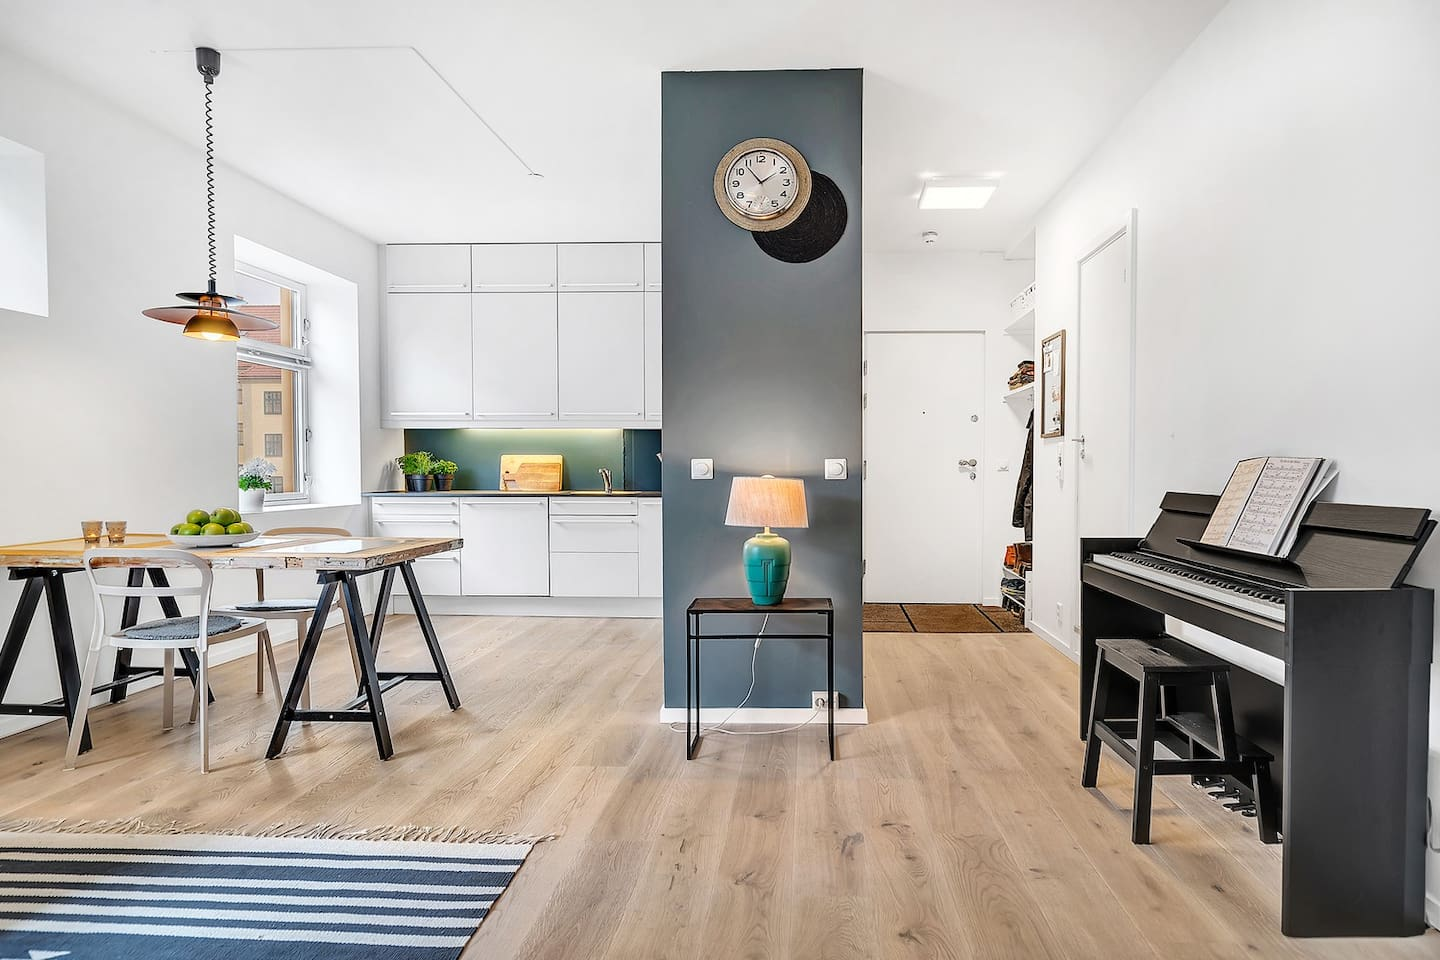 A big spacious room for kitchen and livingroom